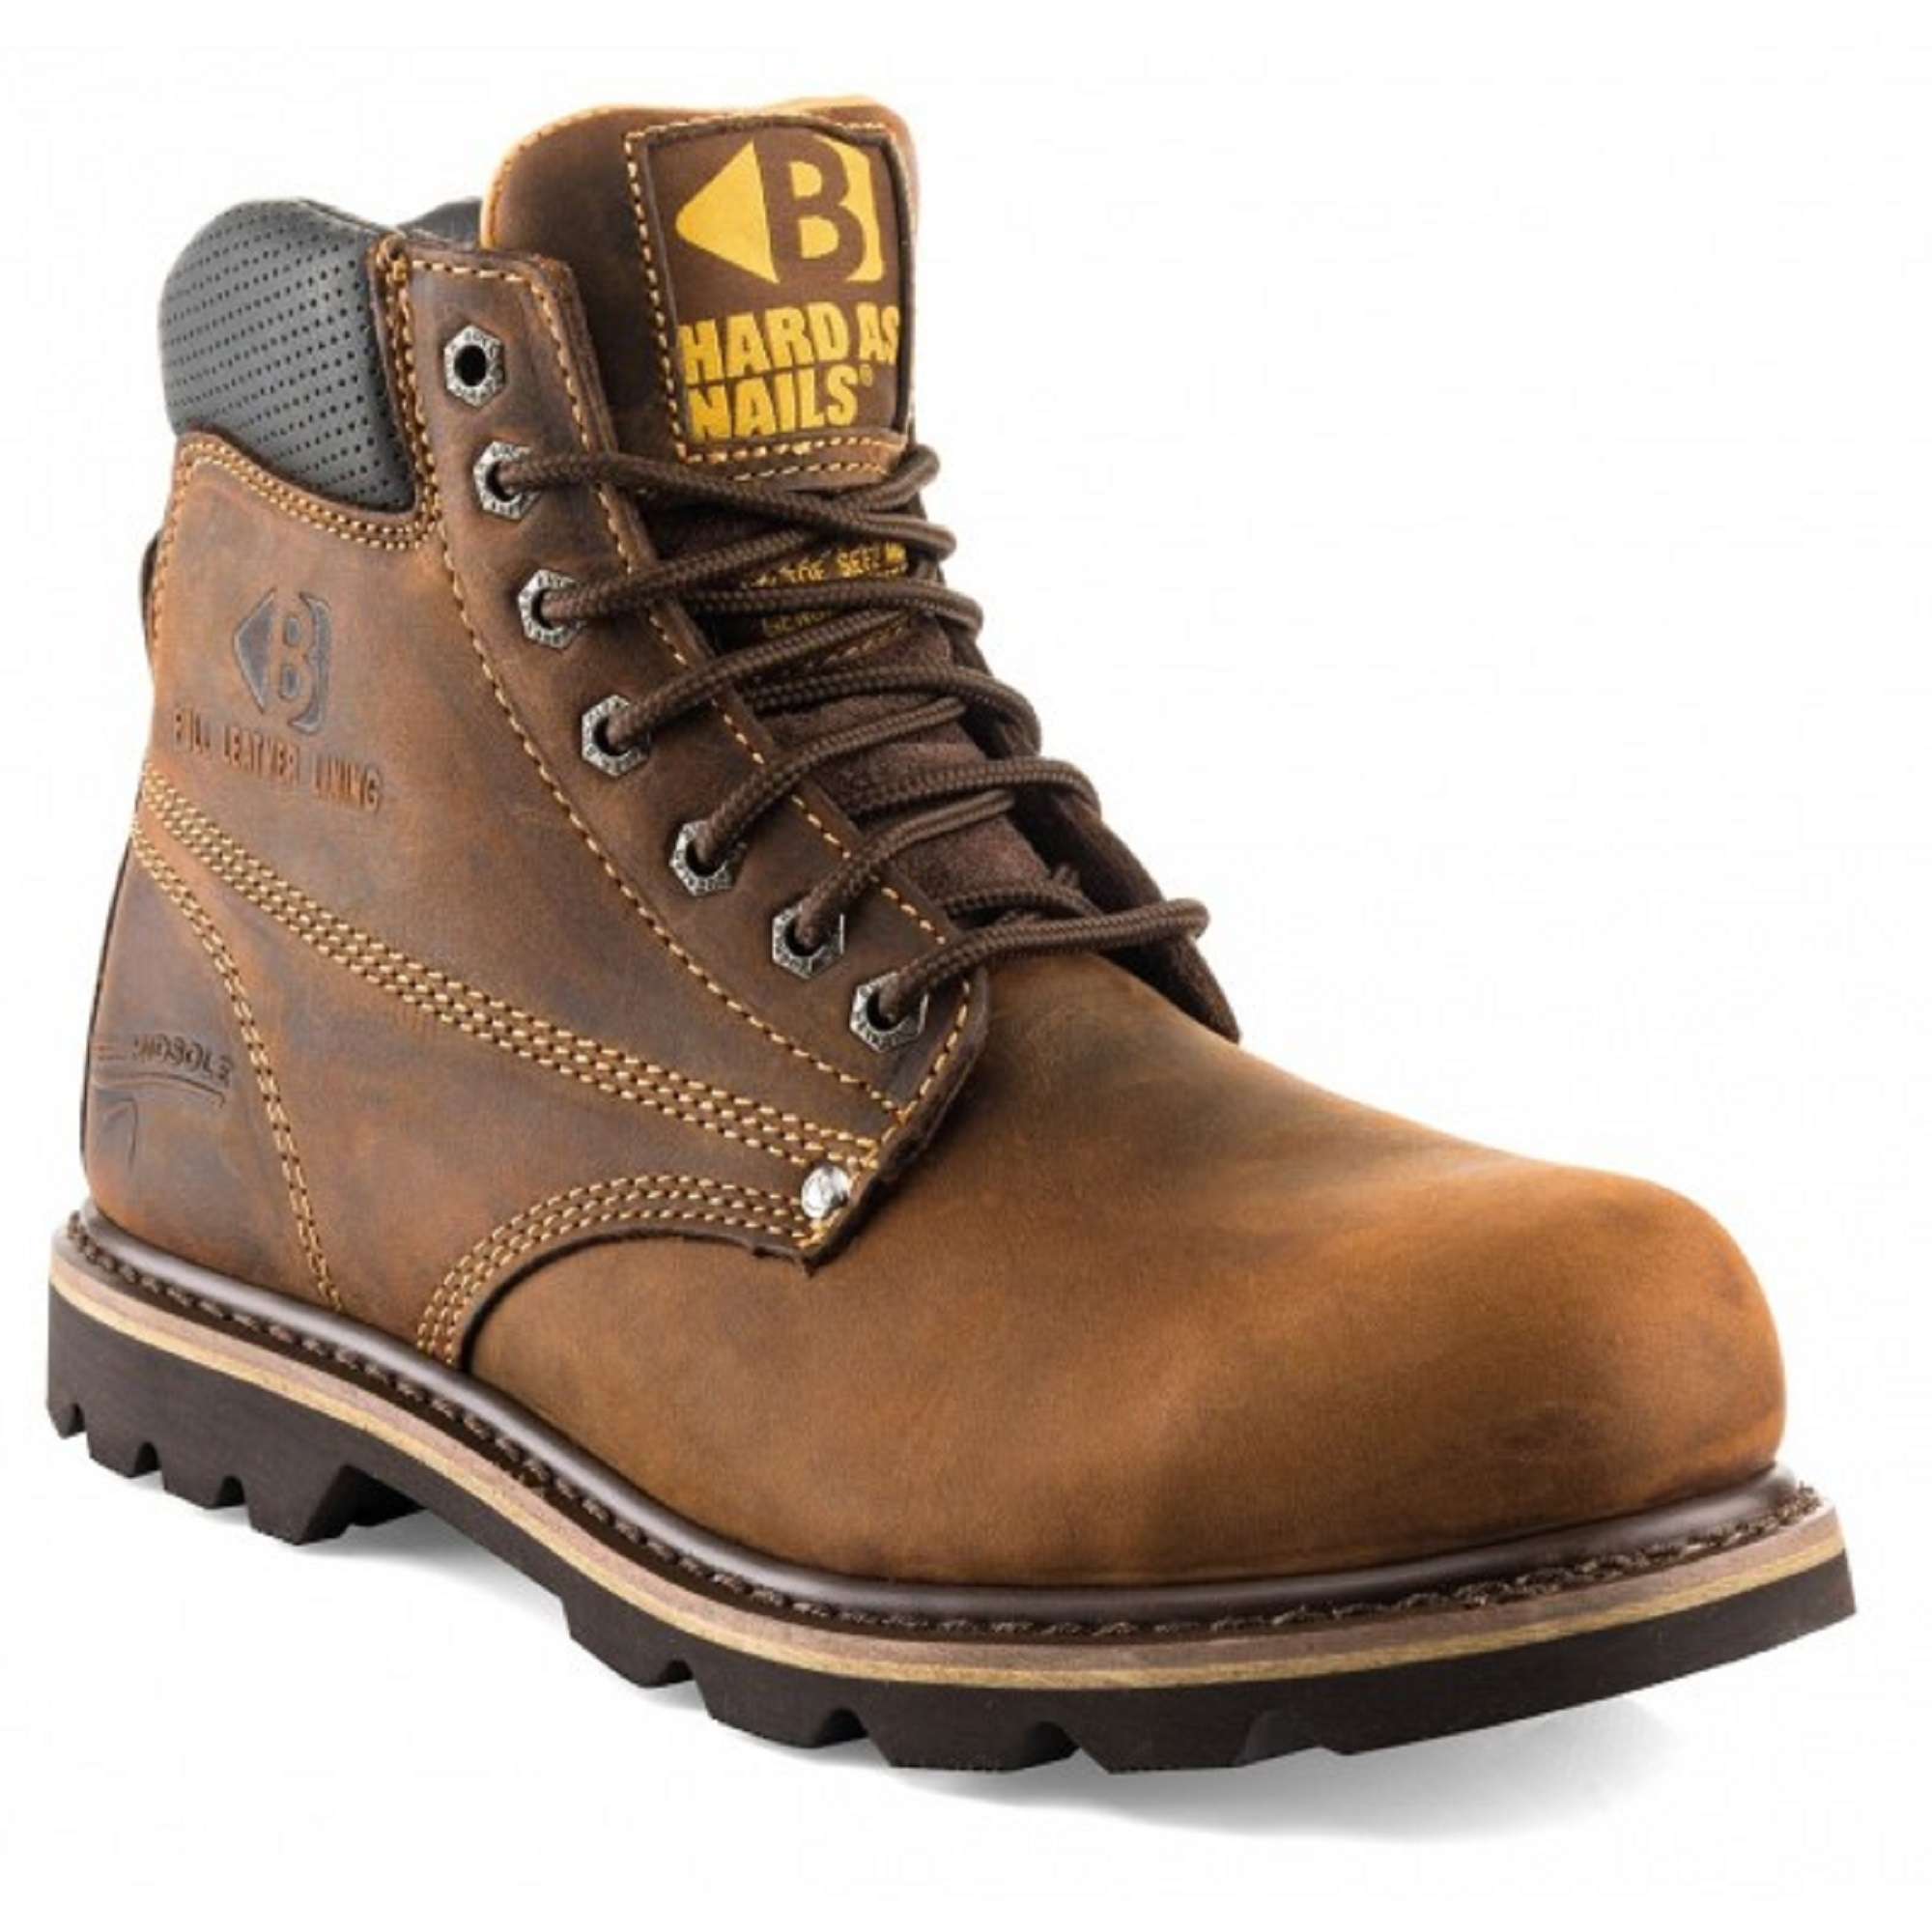 Dark brown leather Buckler B425SM lace up safety boot with yellow Buckler logo on the tongue and contrasting tan stitching